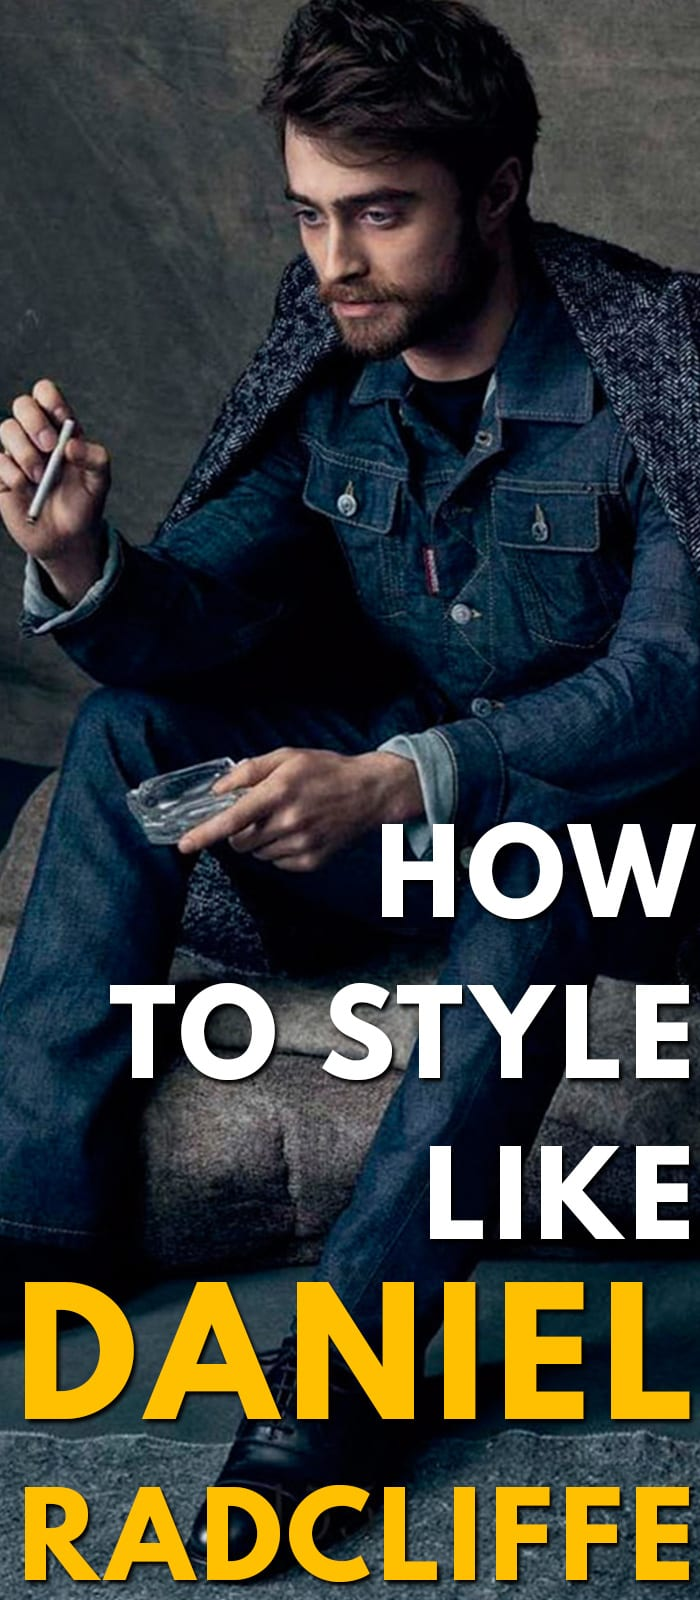 How To Style Like Daniel Radcliffe